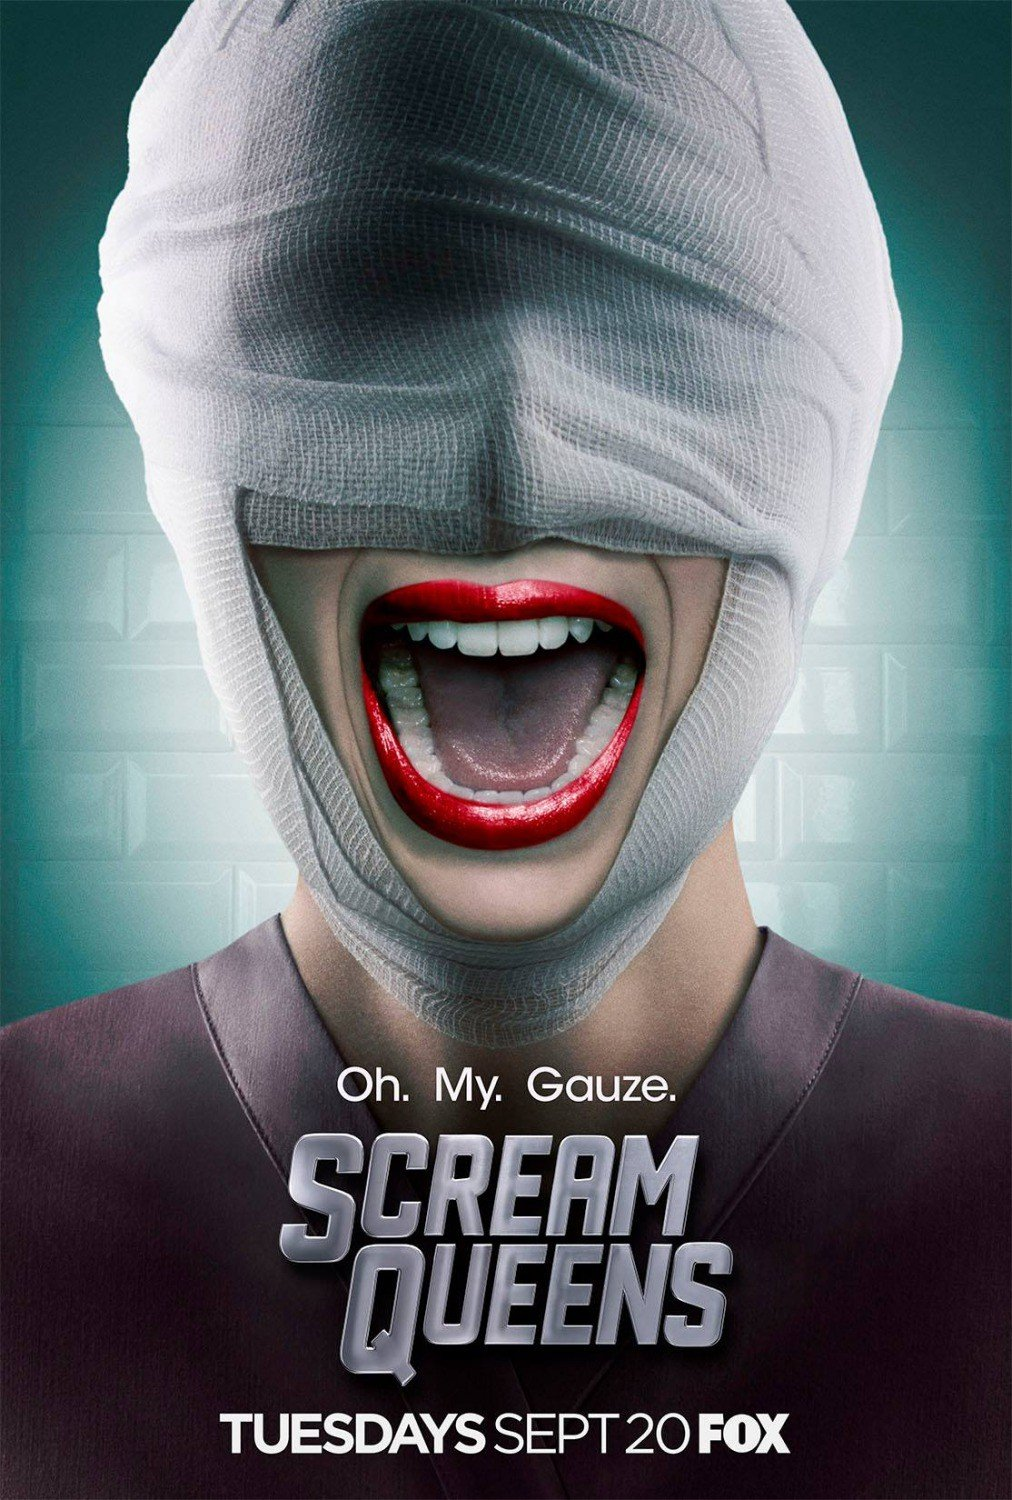 Scream Queens Season 2 尖叫皇后 第二季